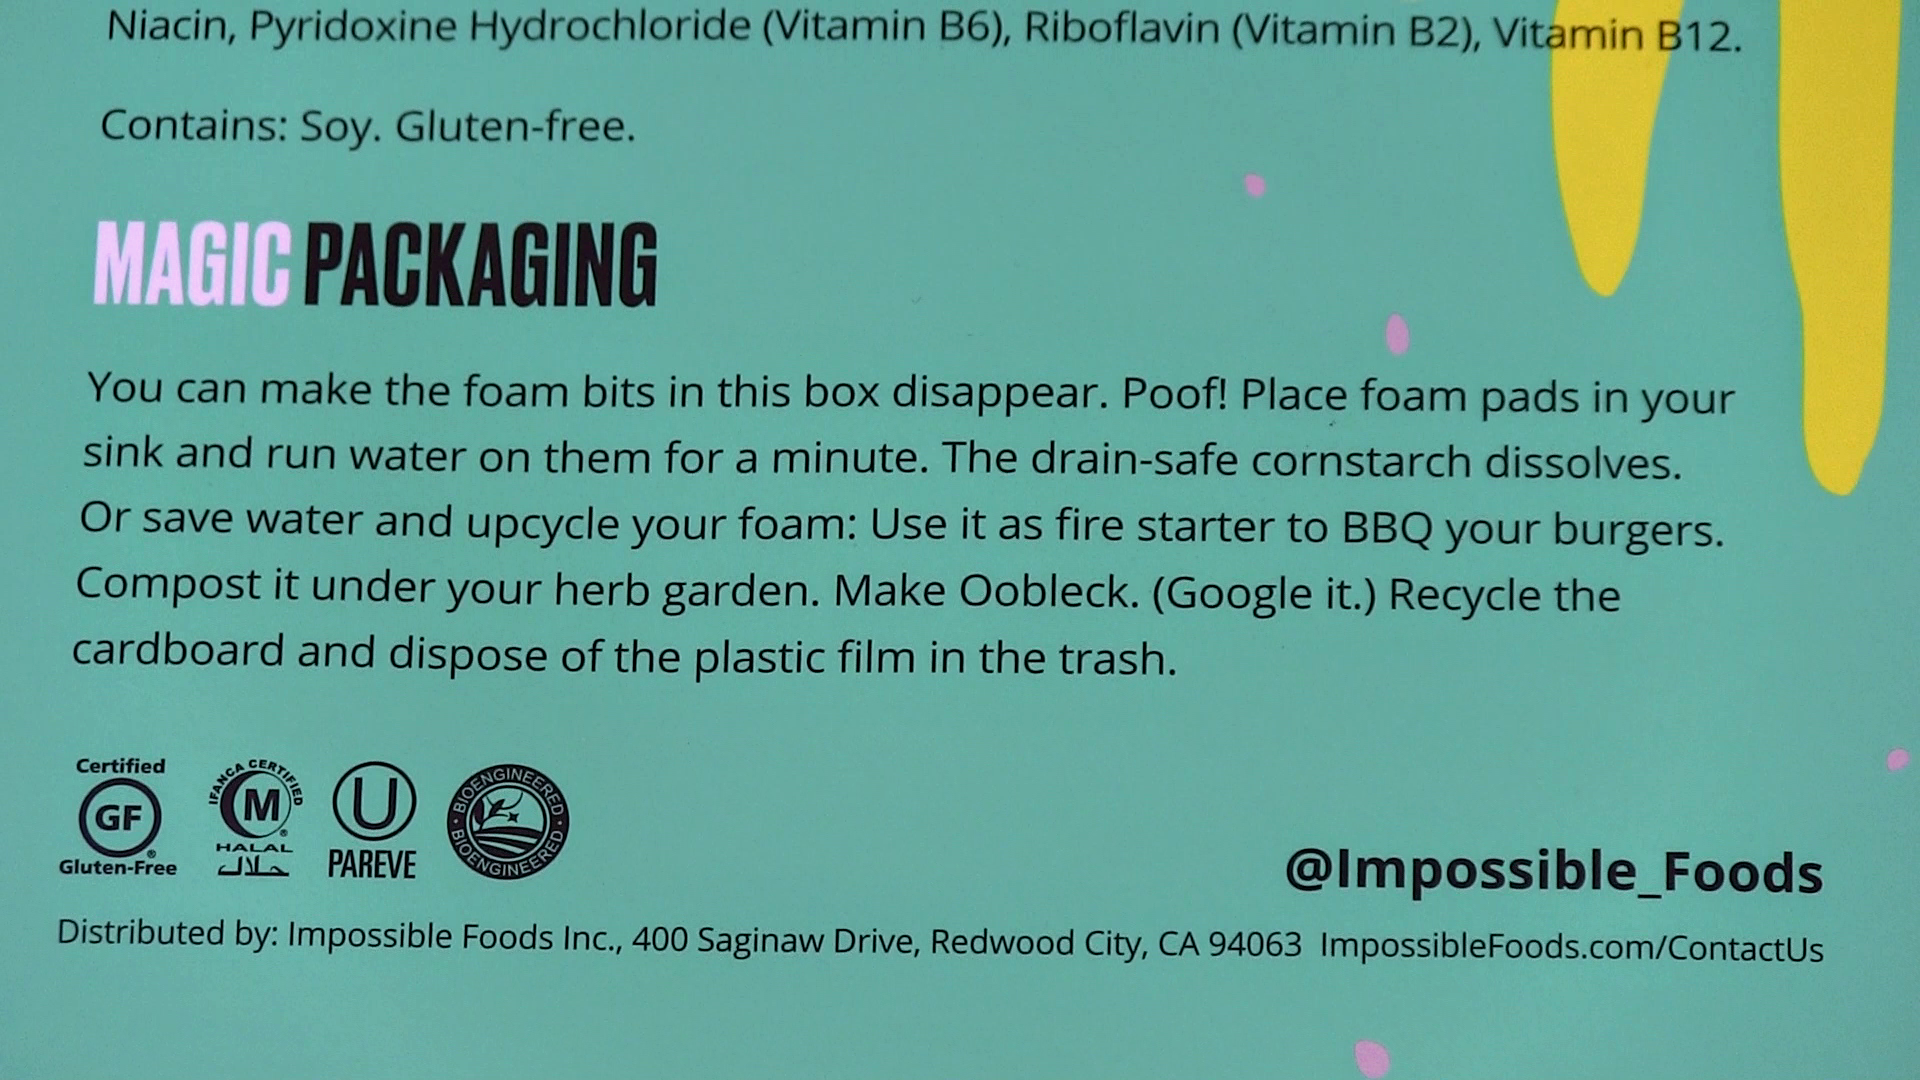 Impossible Foods recycling message